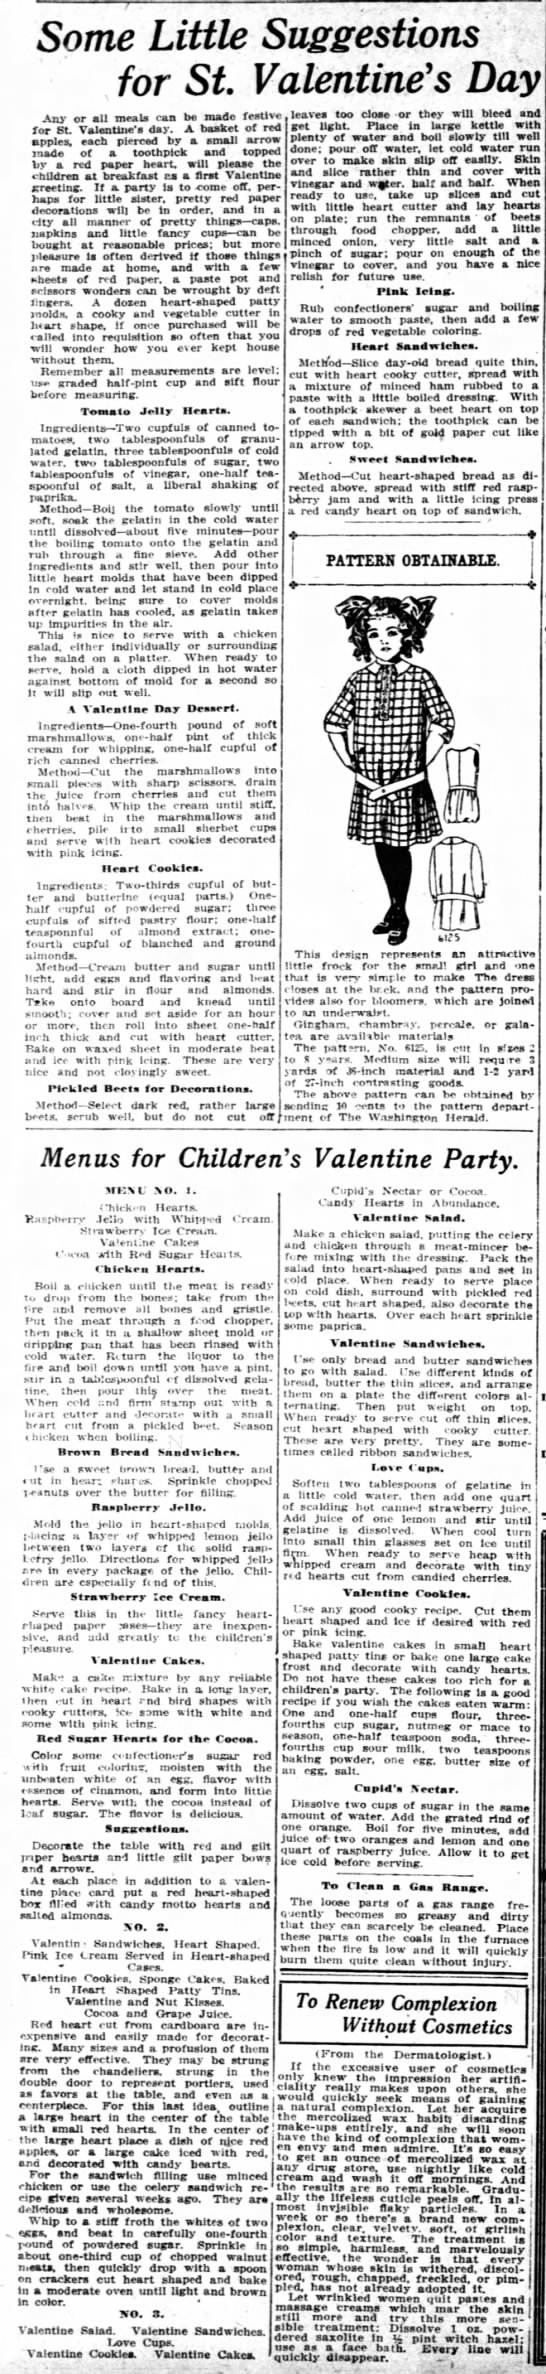 Valentine's recipes from 1913 -